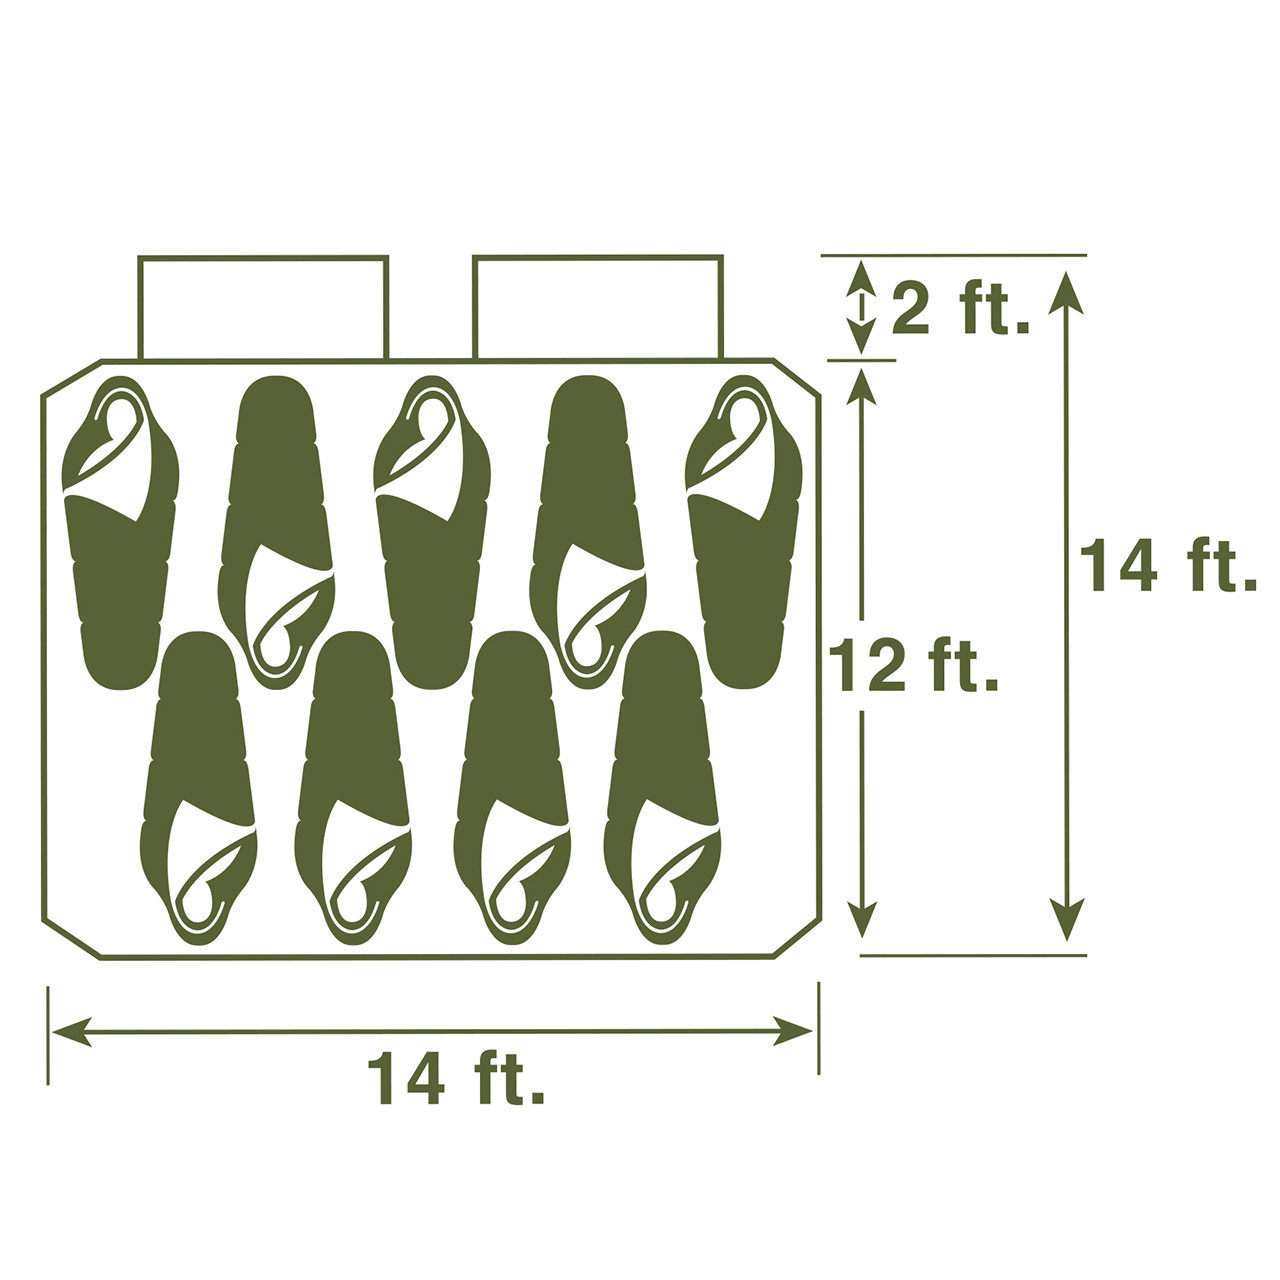 Diagram of the floor sleeping plan for the Wenzel Kodiak 9 tent with people in sleeping bags to illustrate how to arrange 9 people